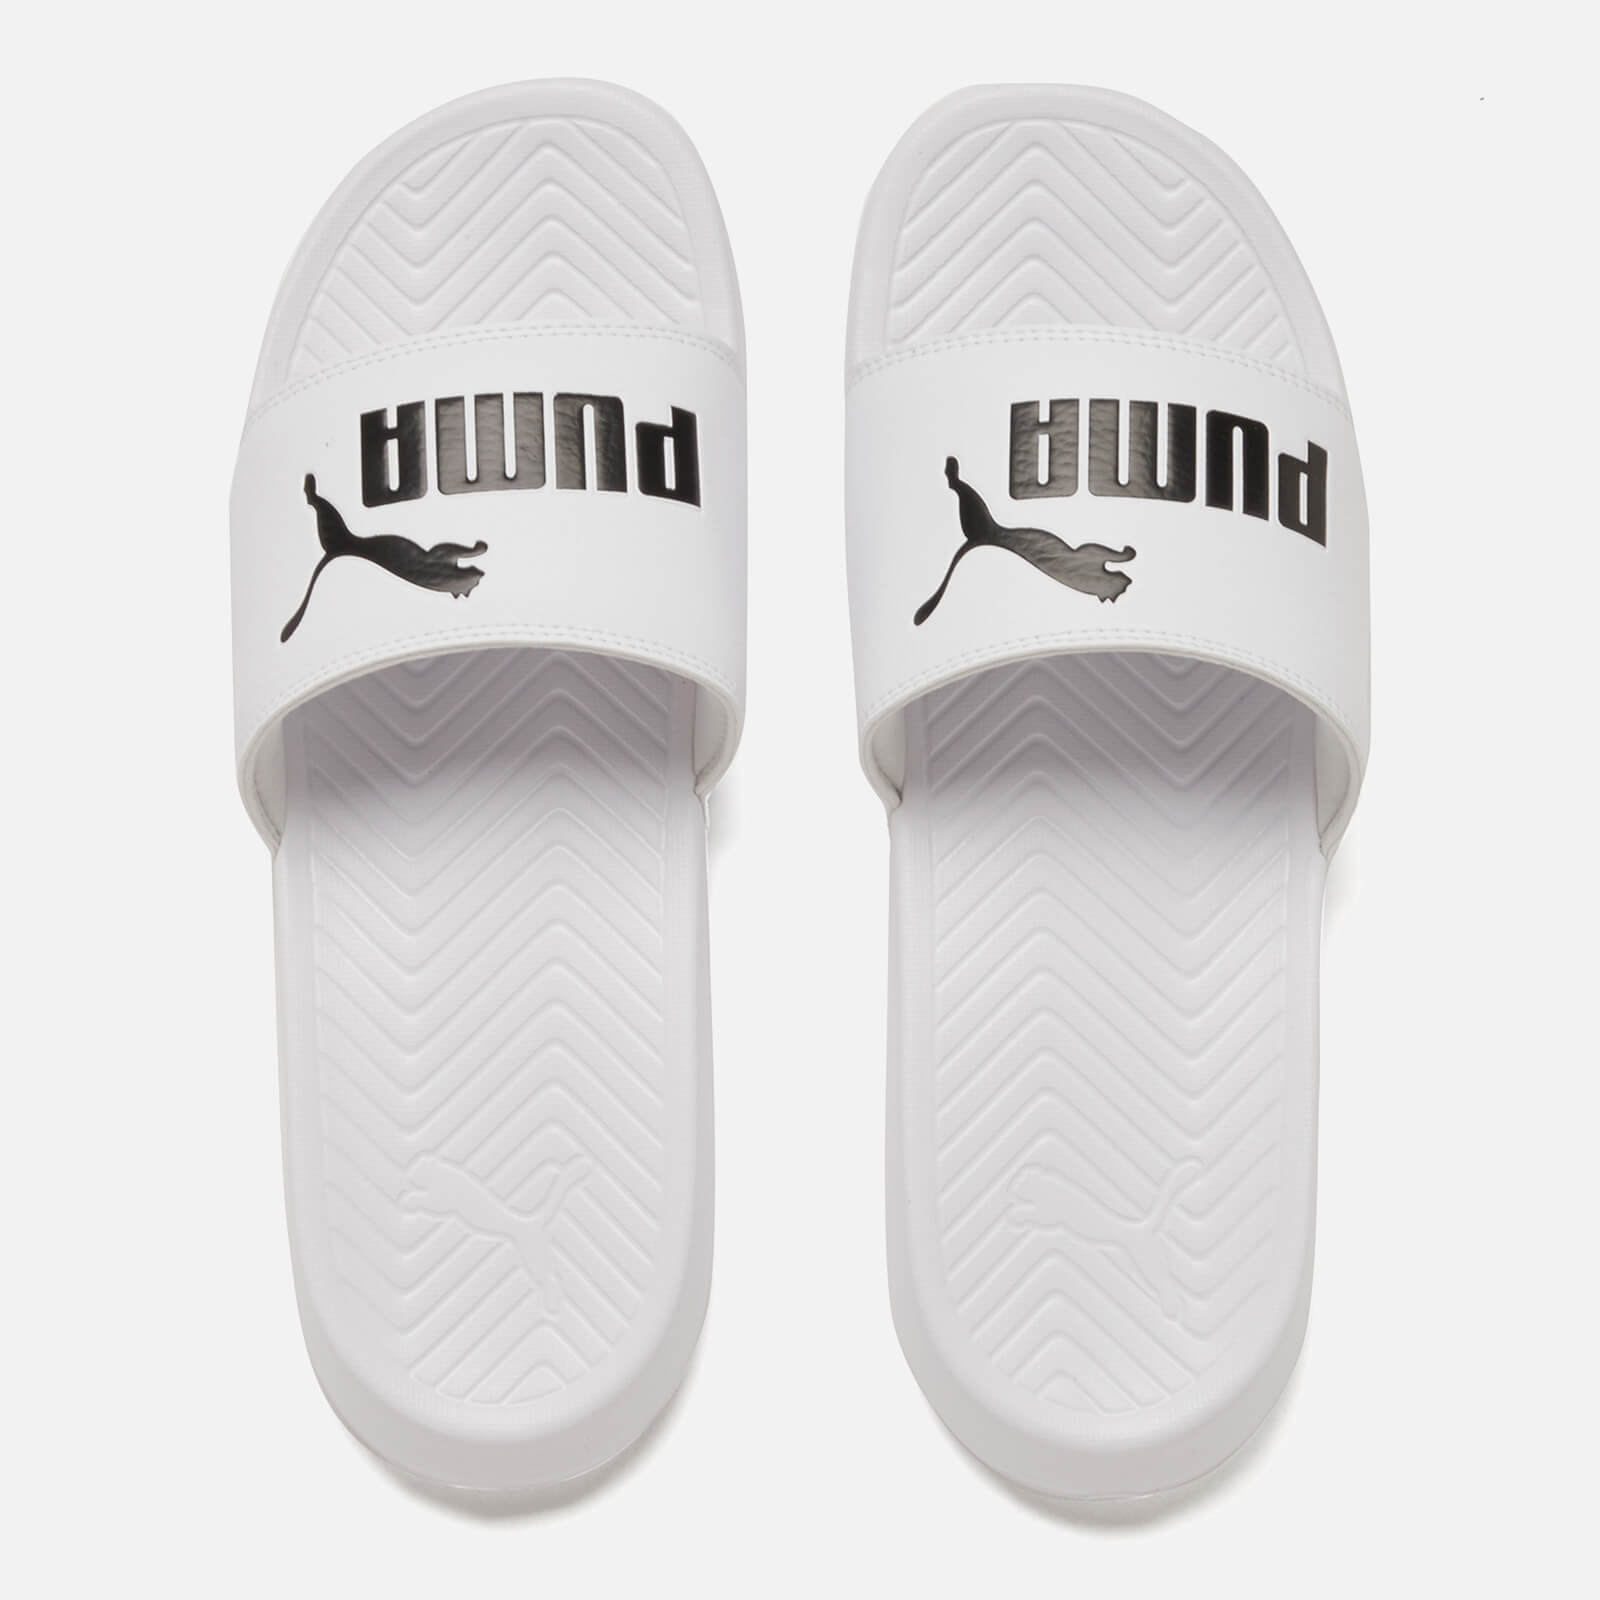 5a2b3aa9df45 Puma Popcat Slide Sandals - White Black - Free UK Delivery over £50